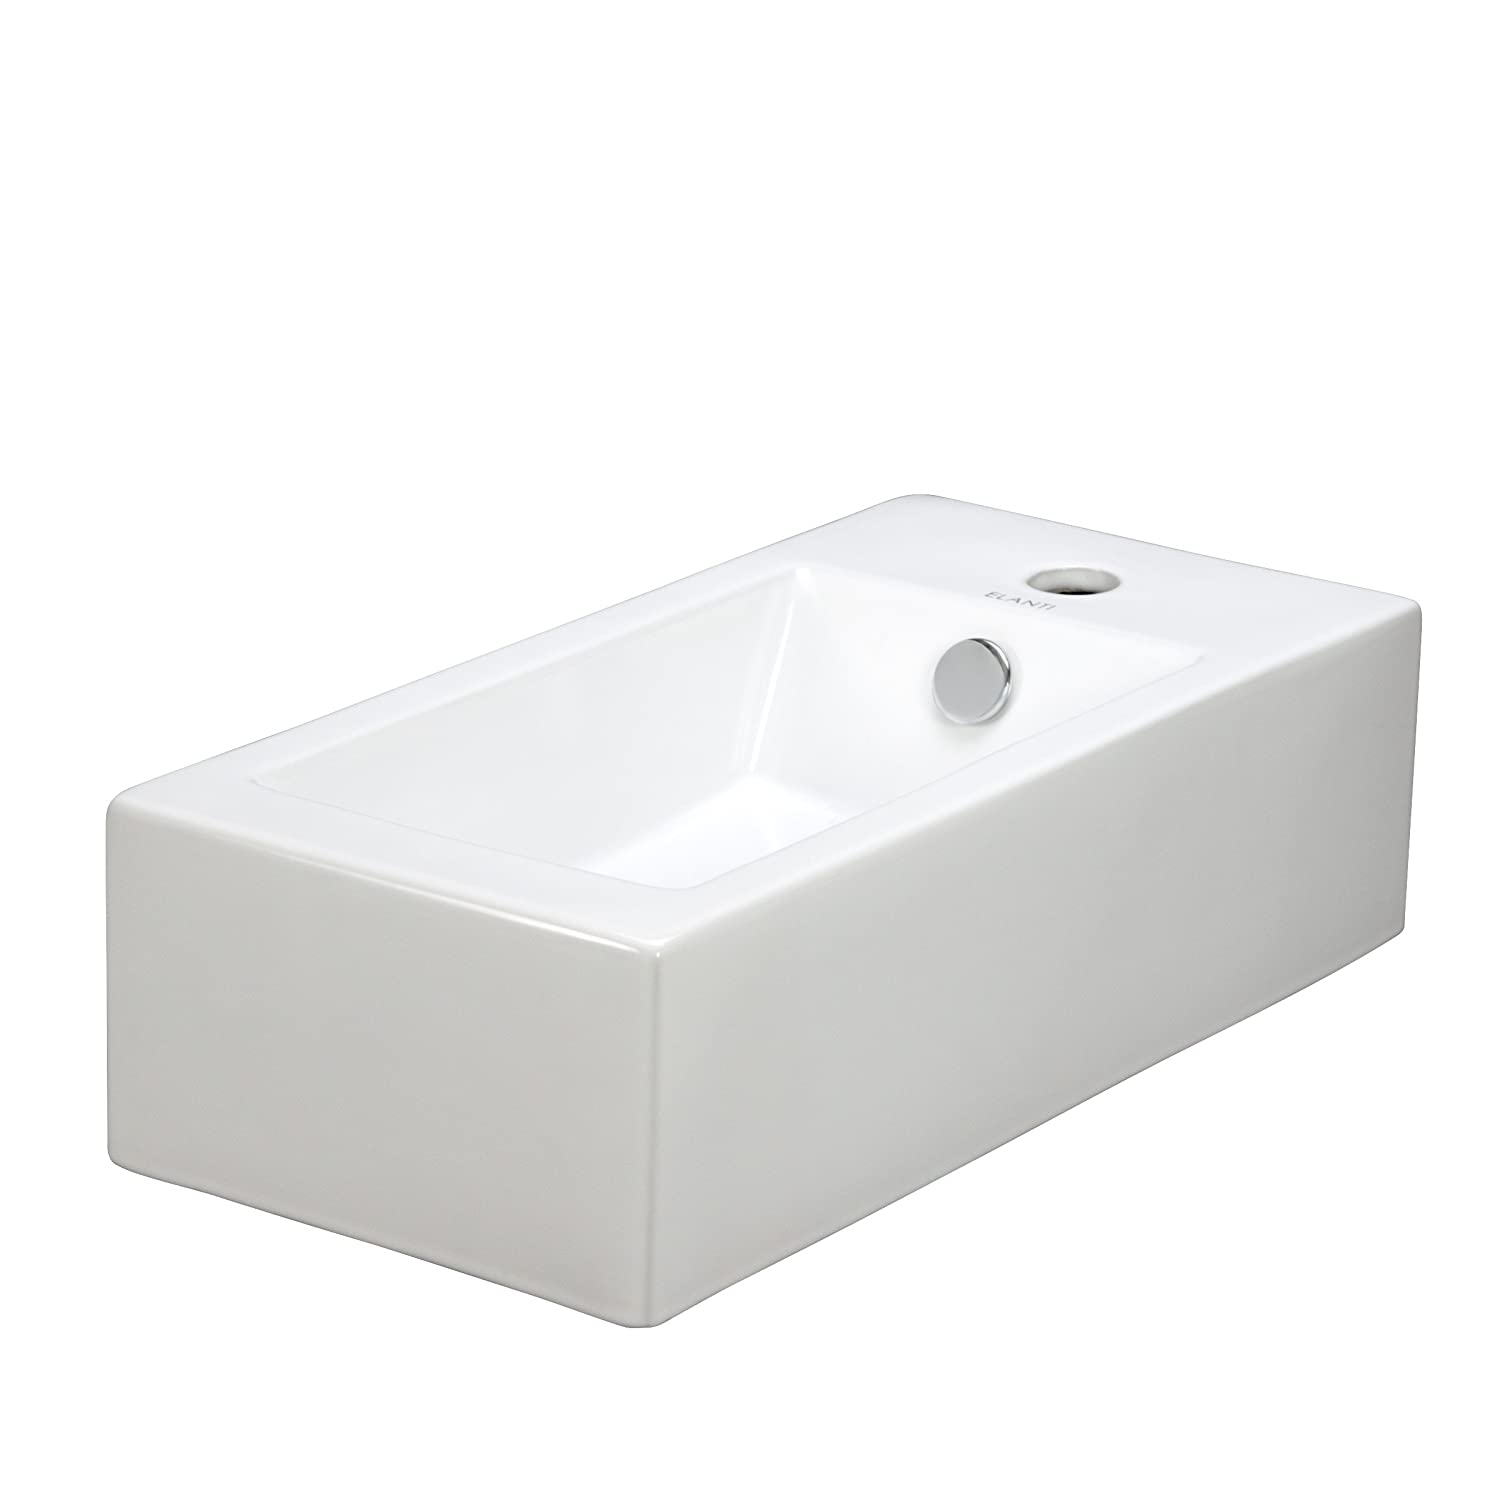 elite sinks ec9899l porcelain wallmounted rectangle leftfacing sink white wall mounted bathroom sink amazoncom